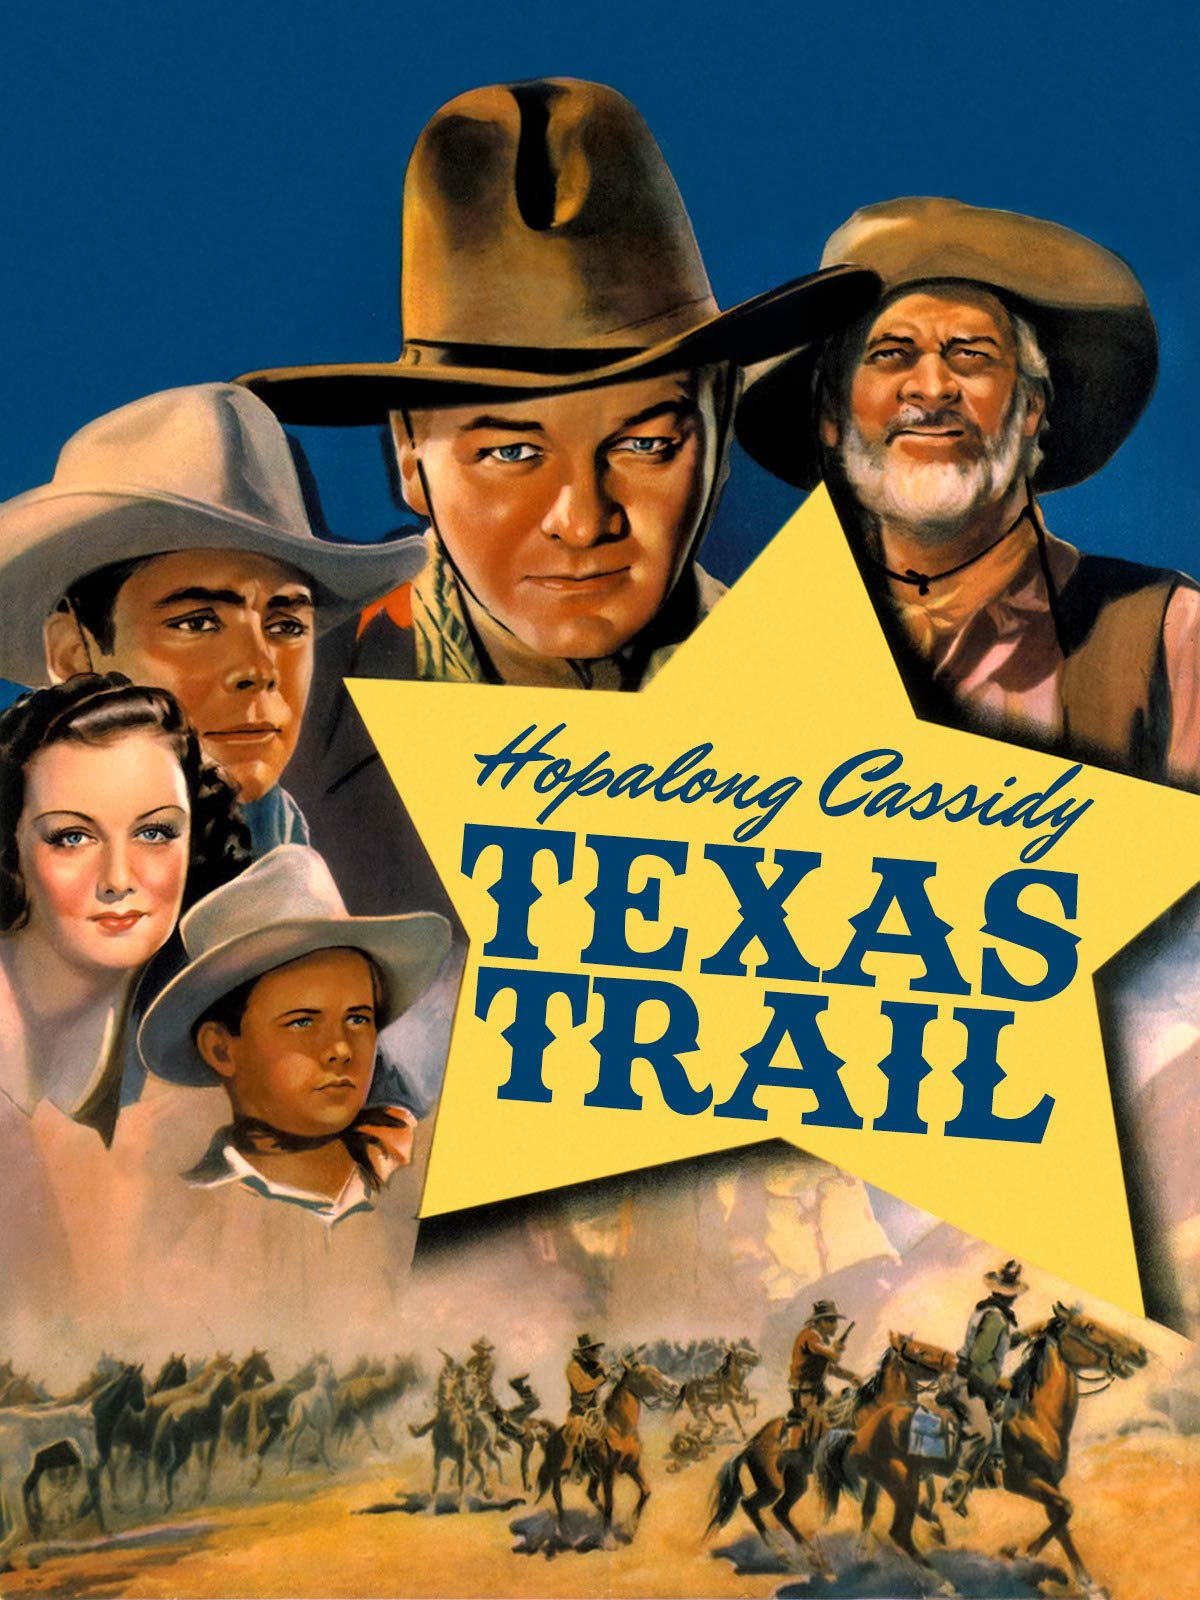 Hopalong Cassidy Texas Trail